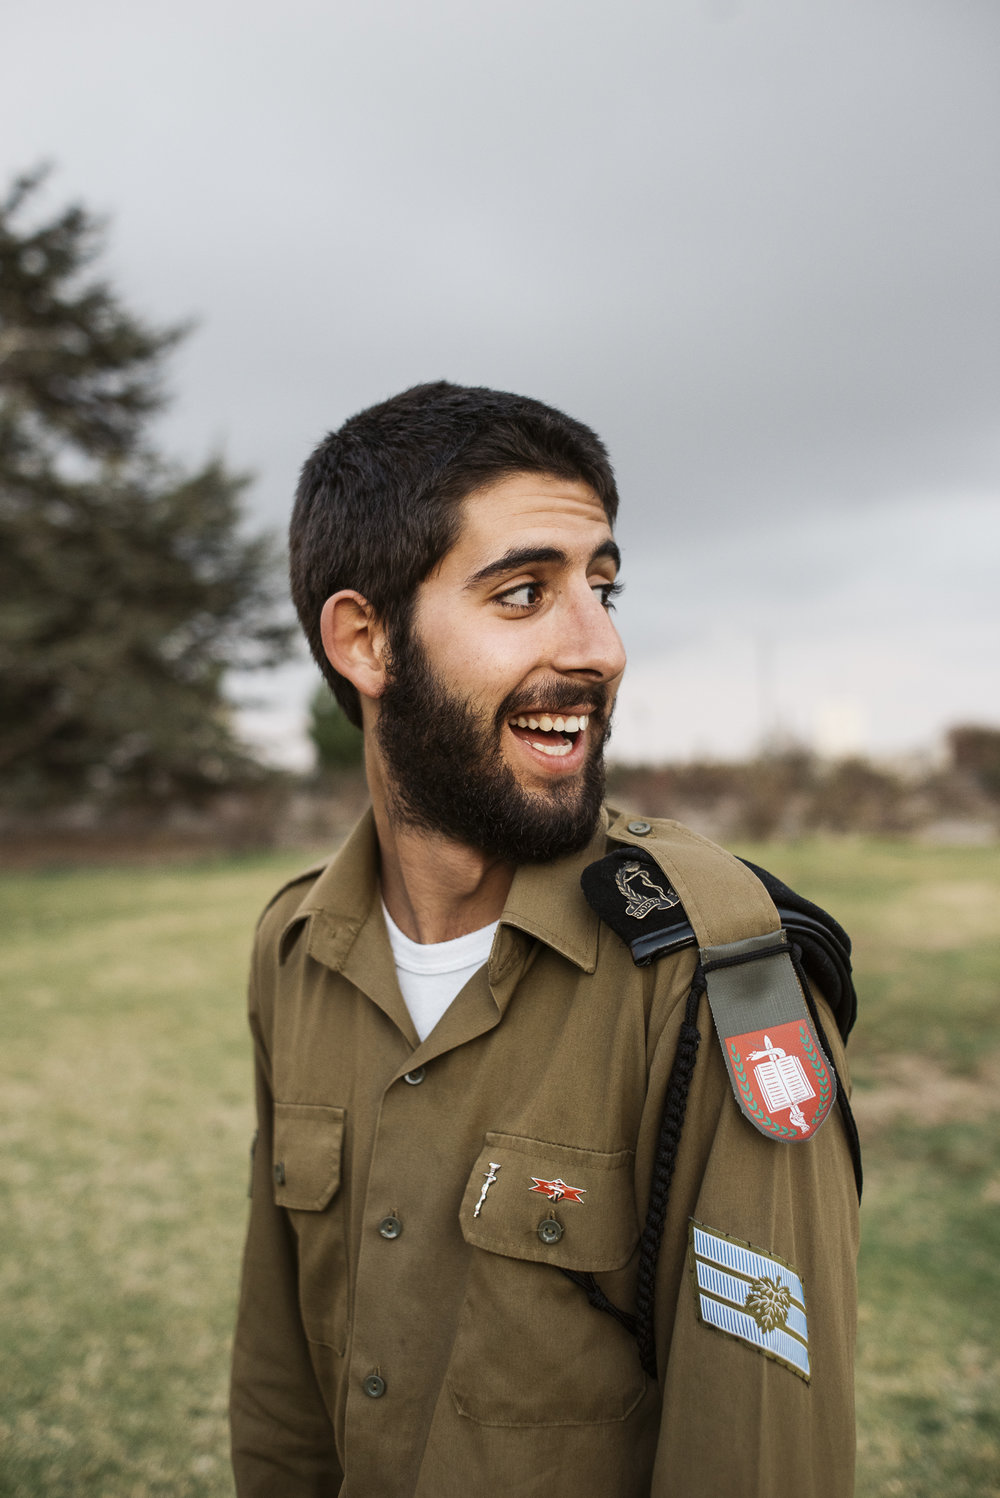 israel jack sorokin middle east photography fine art travel jewish judaism idf solider happy laughing joy